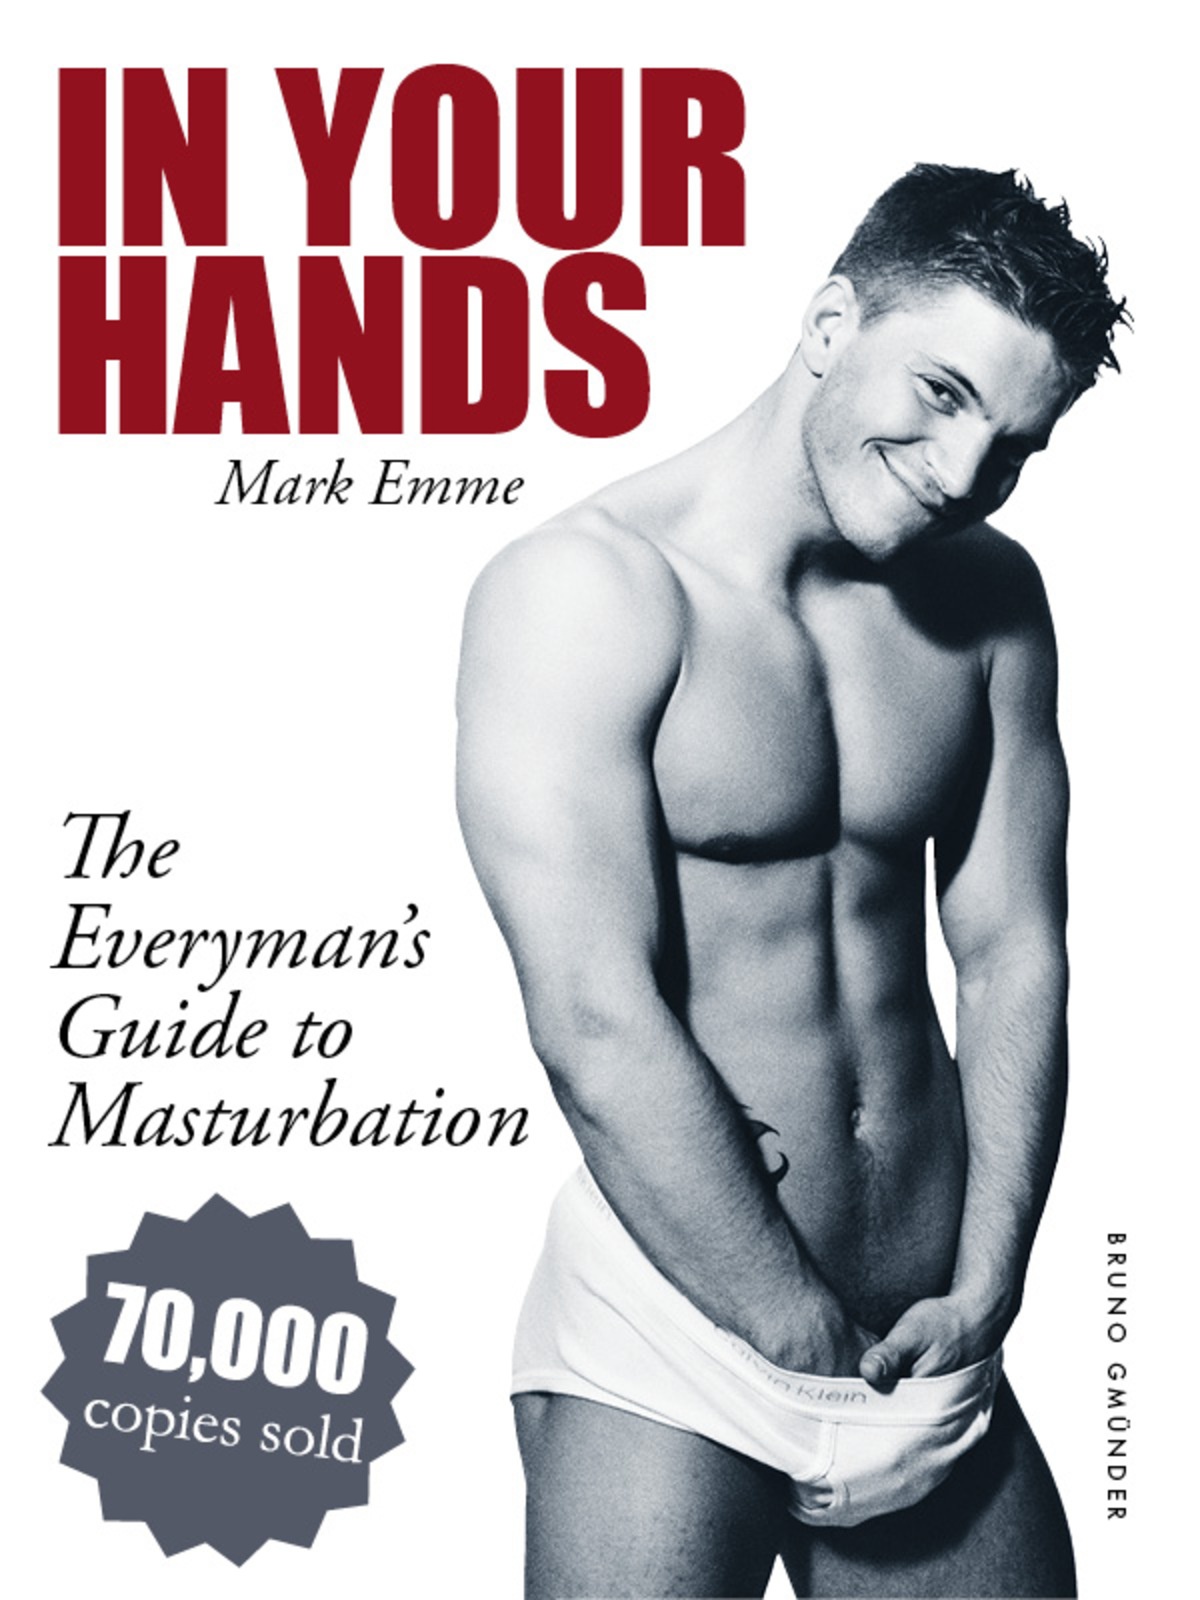 Book Cover: In Your Hands. The Everyman's Guide to Masturbation